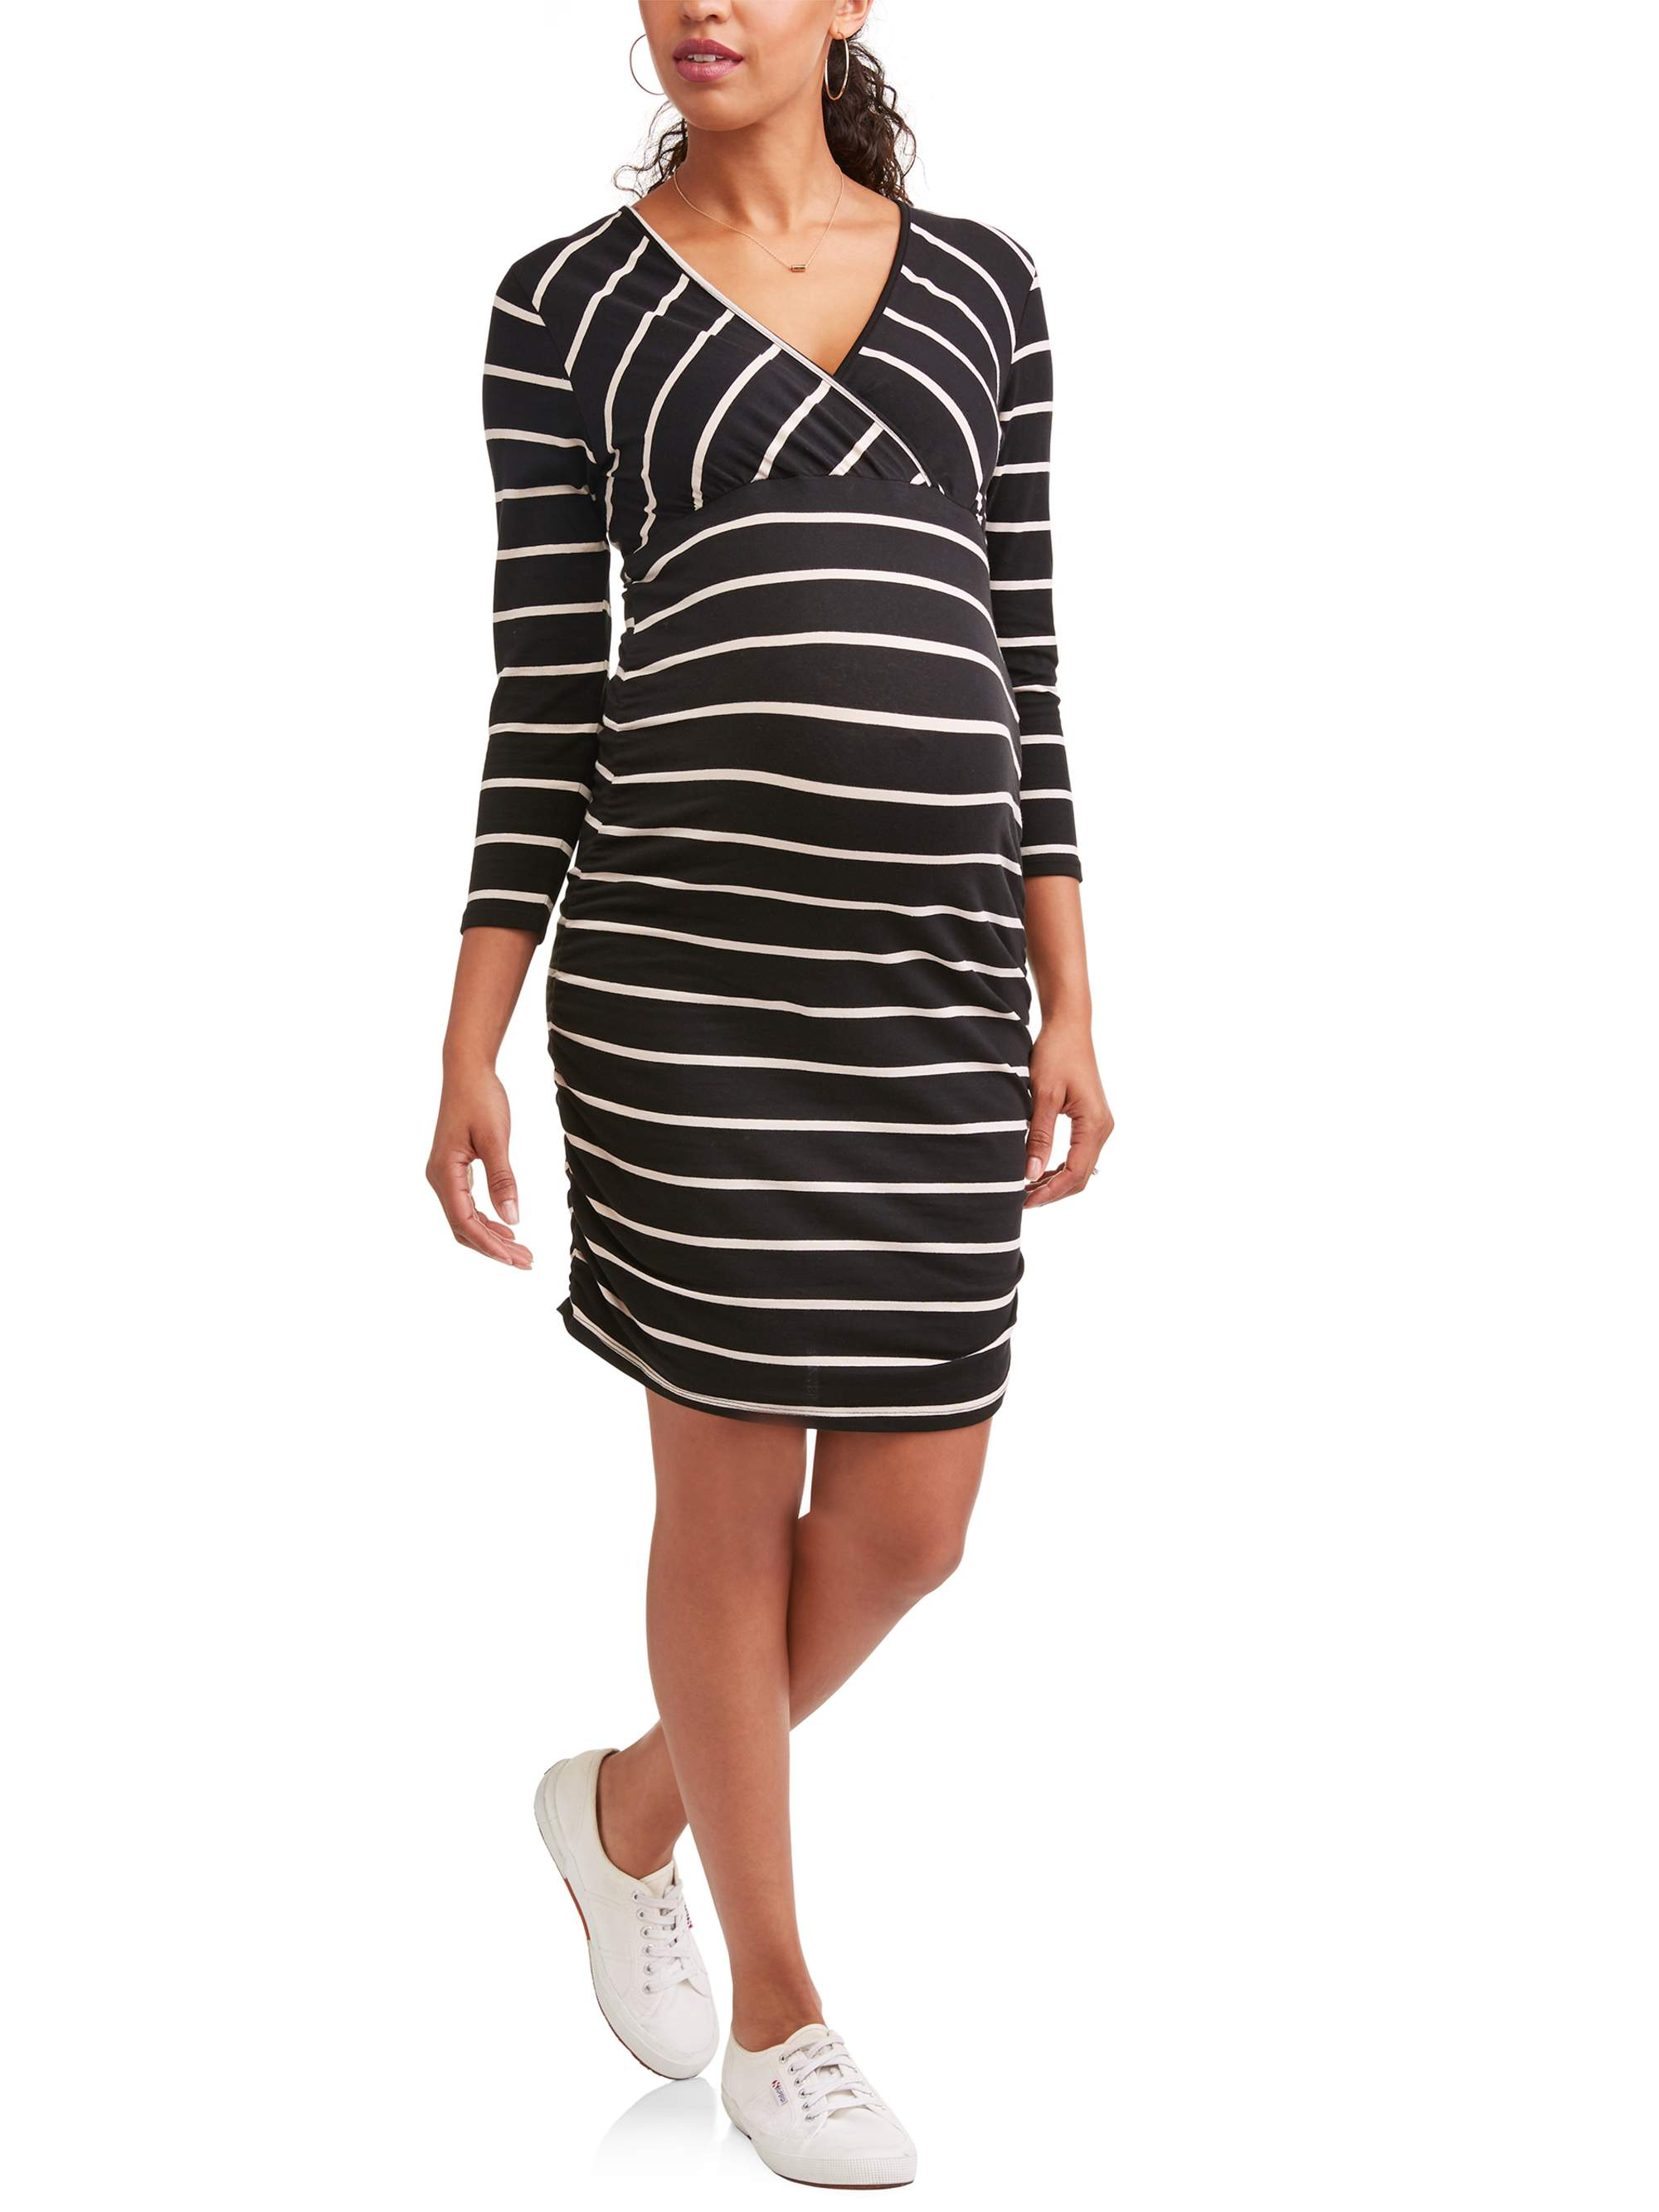 Maternity 3/4 Sleeve Surplice Dress with Belt - Available in Plus Sizes